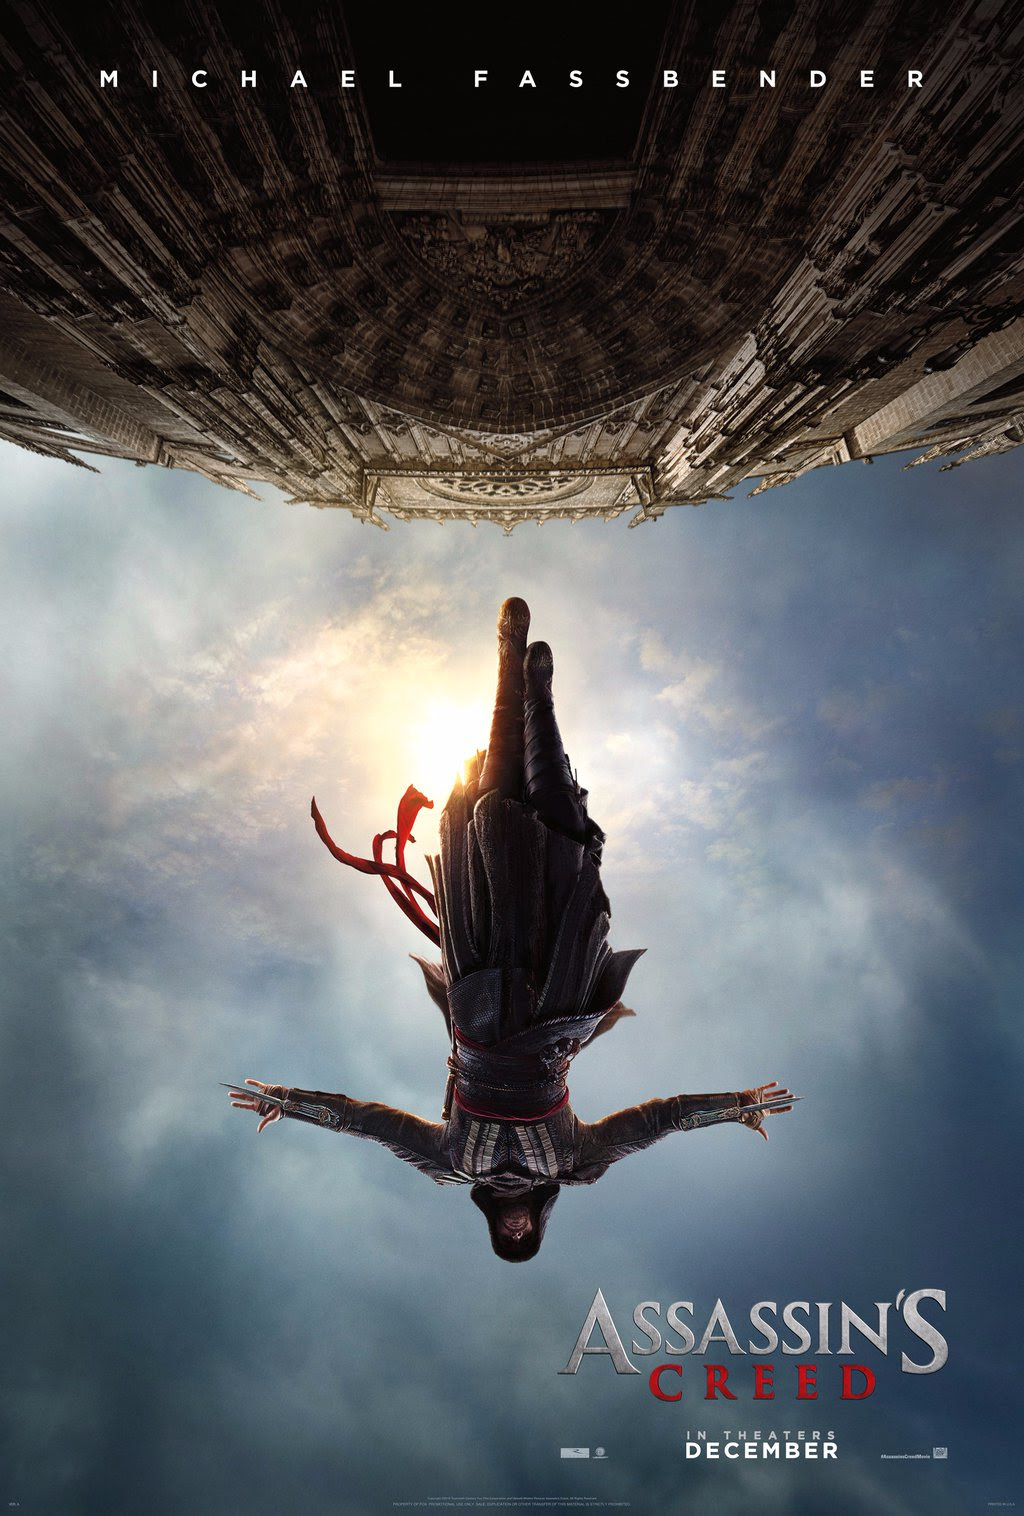 Trailer To Assassin's Creed Starring Michael Fassbender - blackfilm.com - Black Movies ...